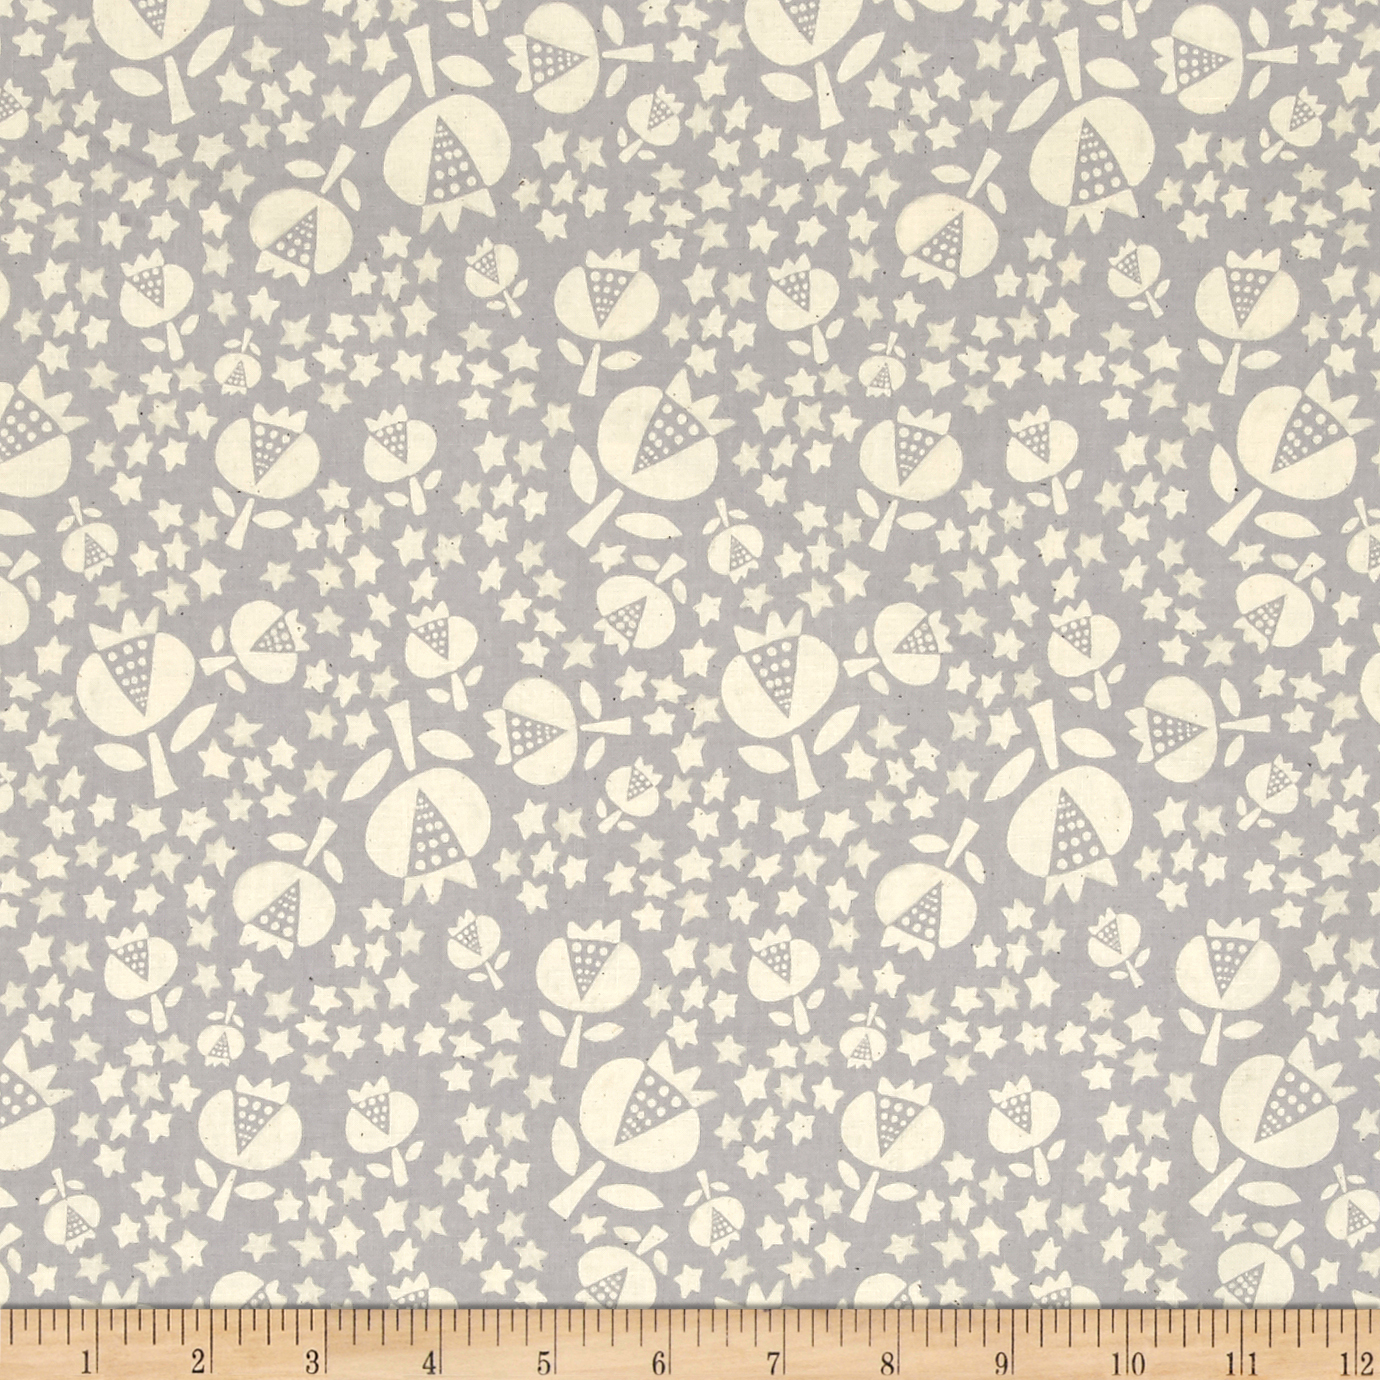 Image of Cotton + Steel Flower Shop Thistle Sky Fabric